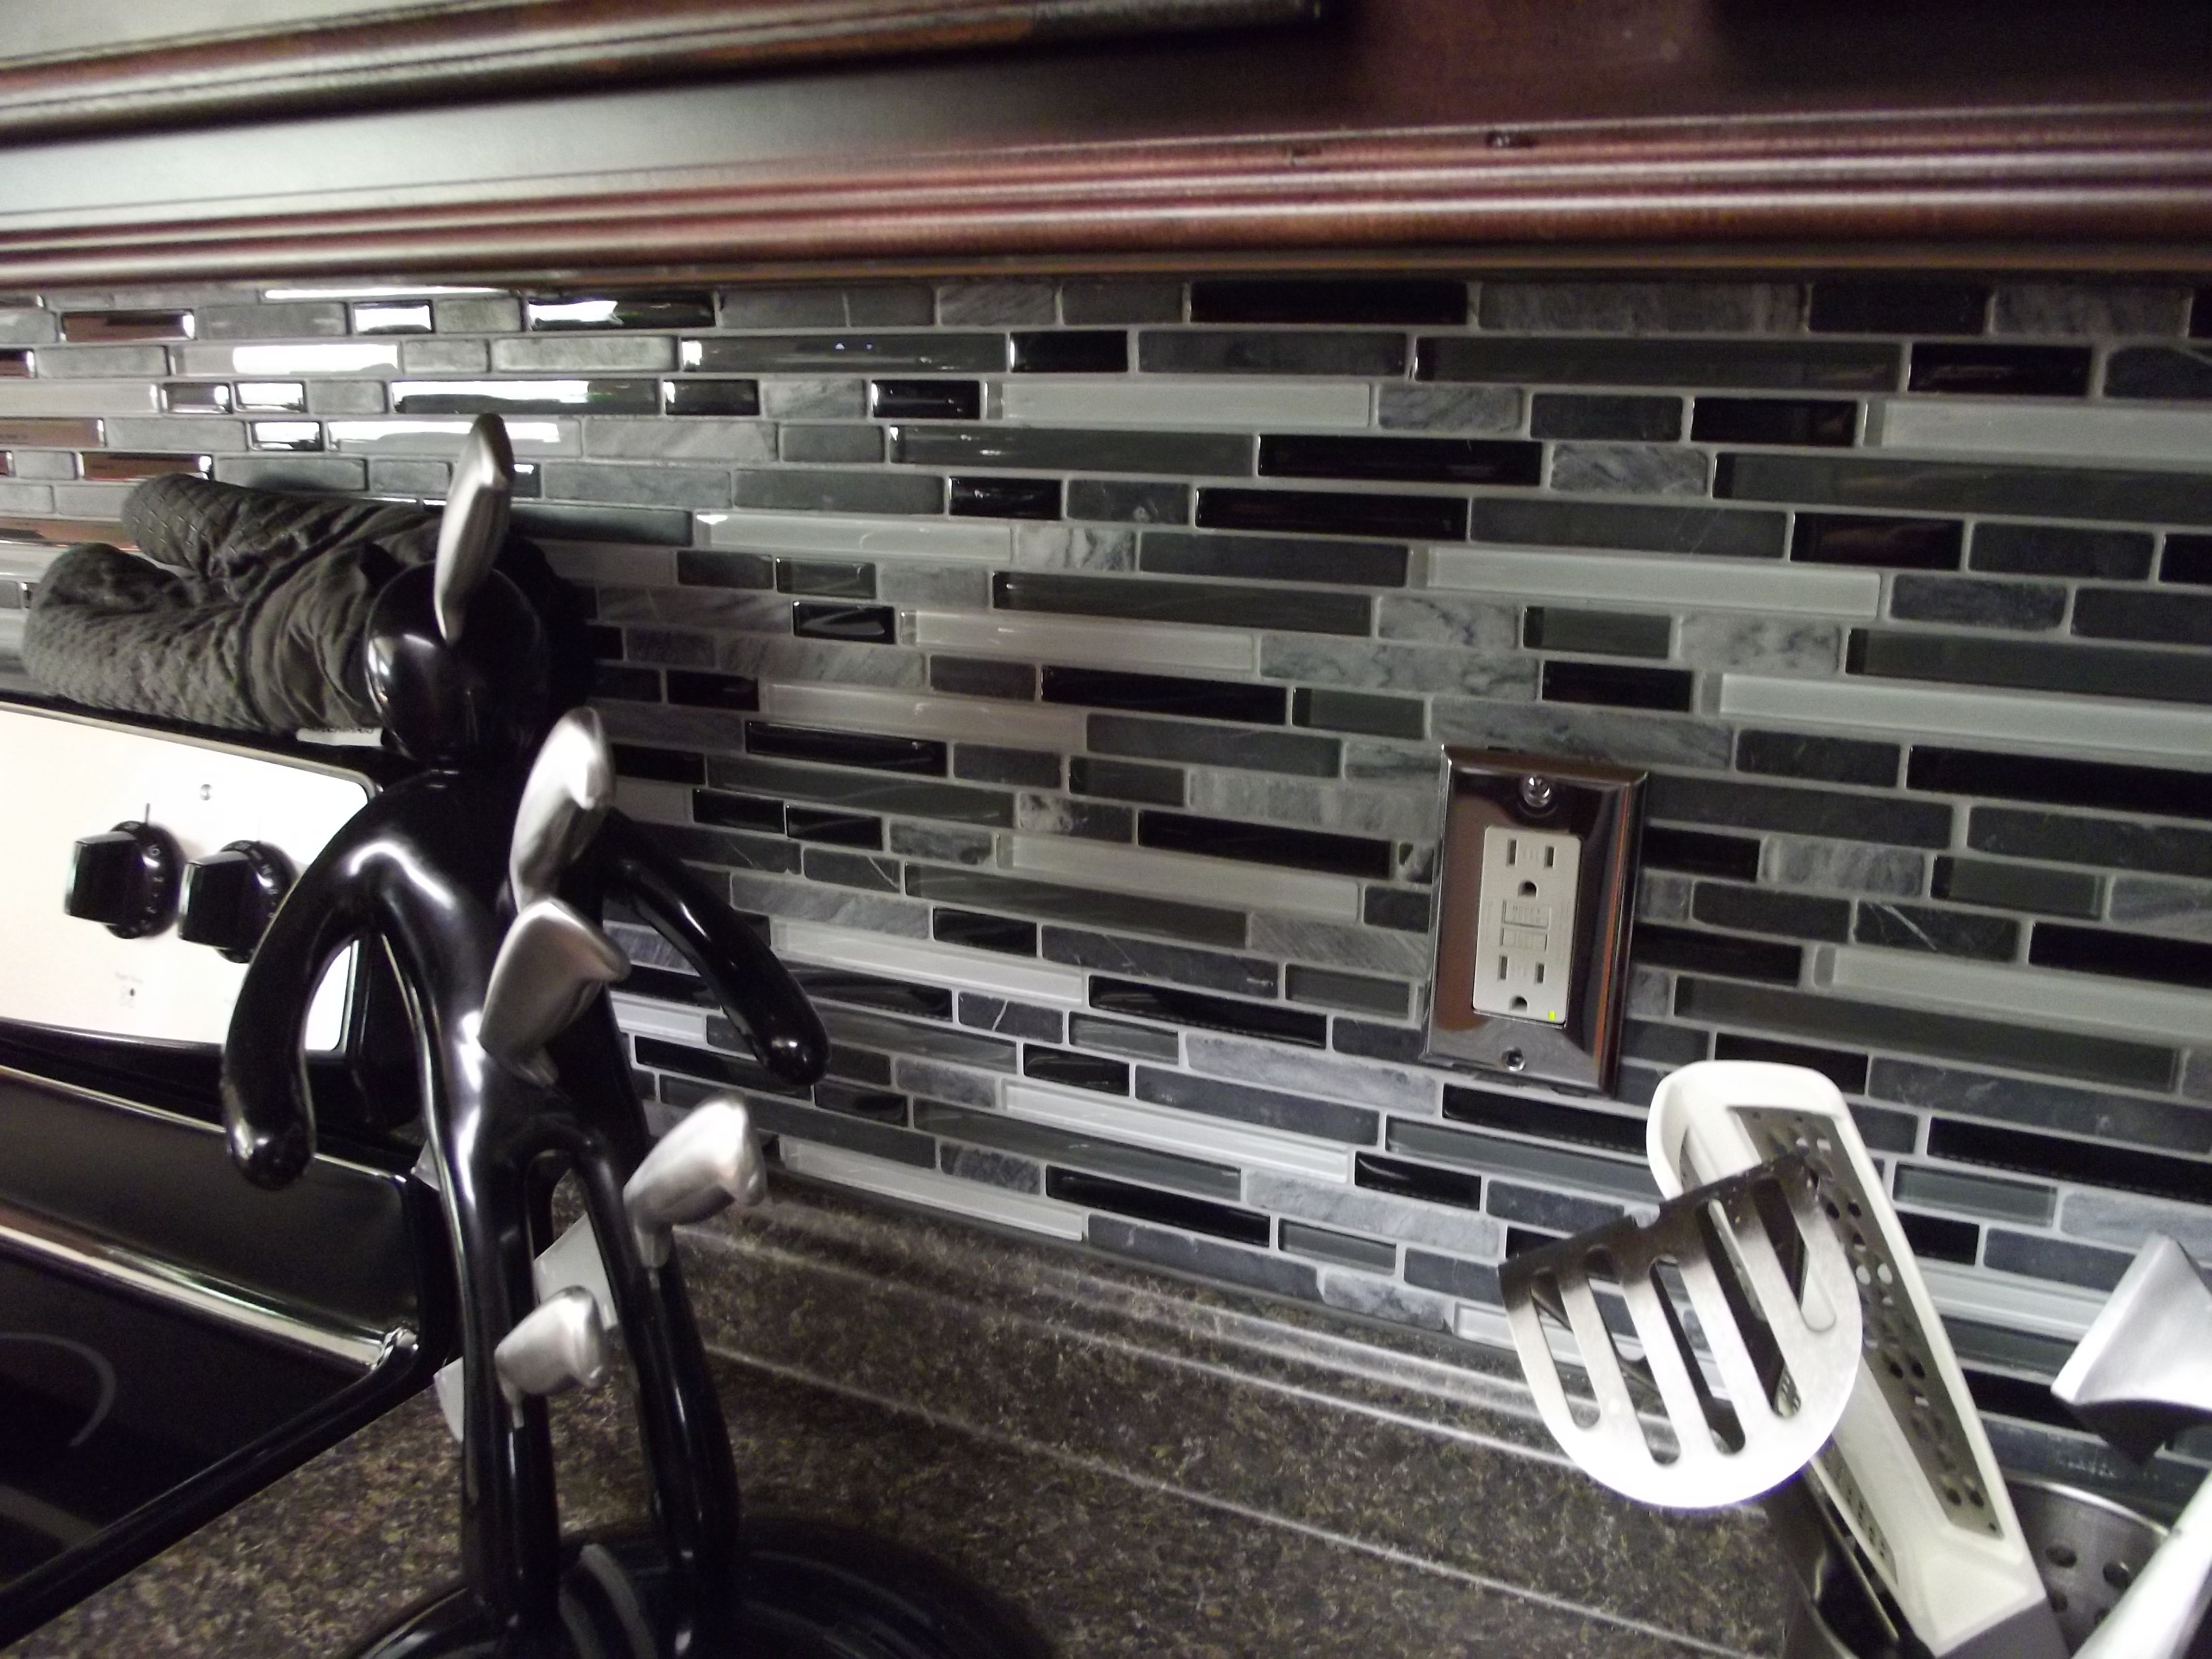 50 best backsplashes images on pinterest backsplash ideas a perfect glass and stone blend of natural stone and black and white glass tiles